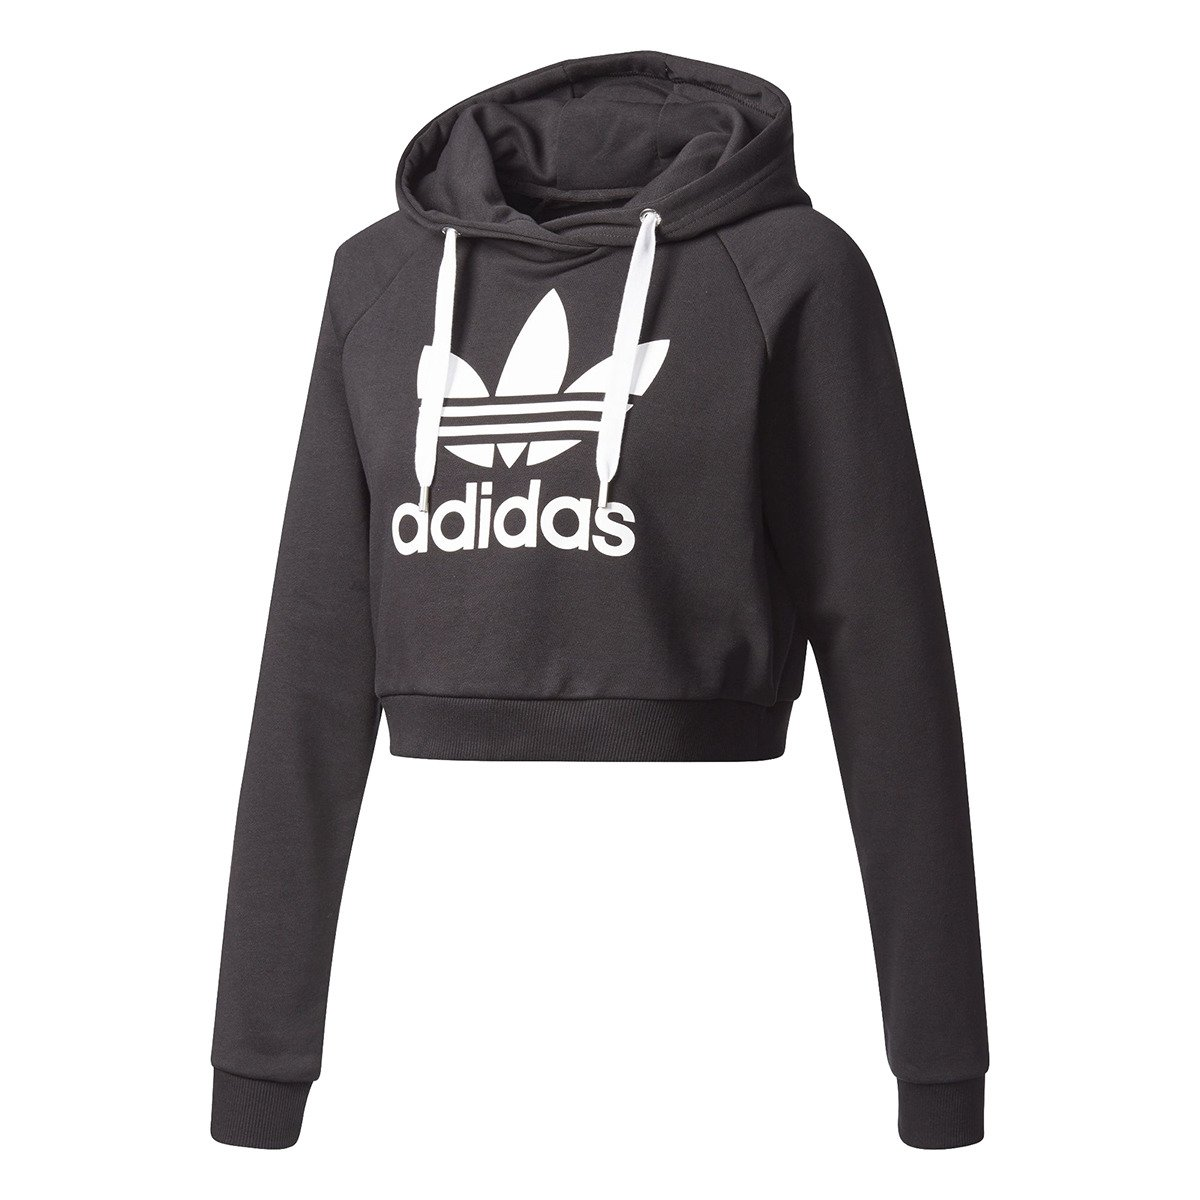 adidas originals trefoil crop hoodie bp9478 basketball clothing casual wear hoodies. Black Bedroom Furniture Sets. Home Design Ideas